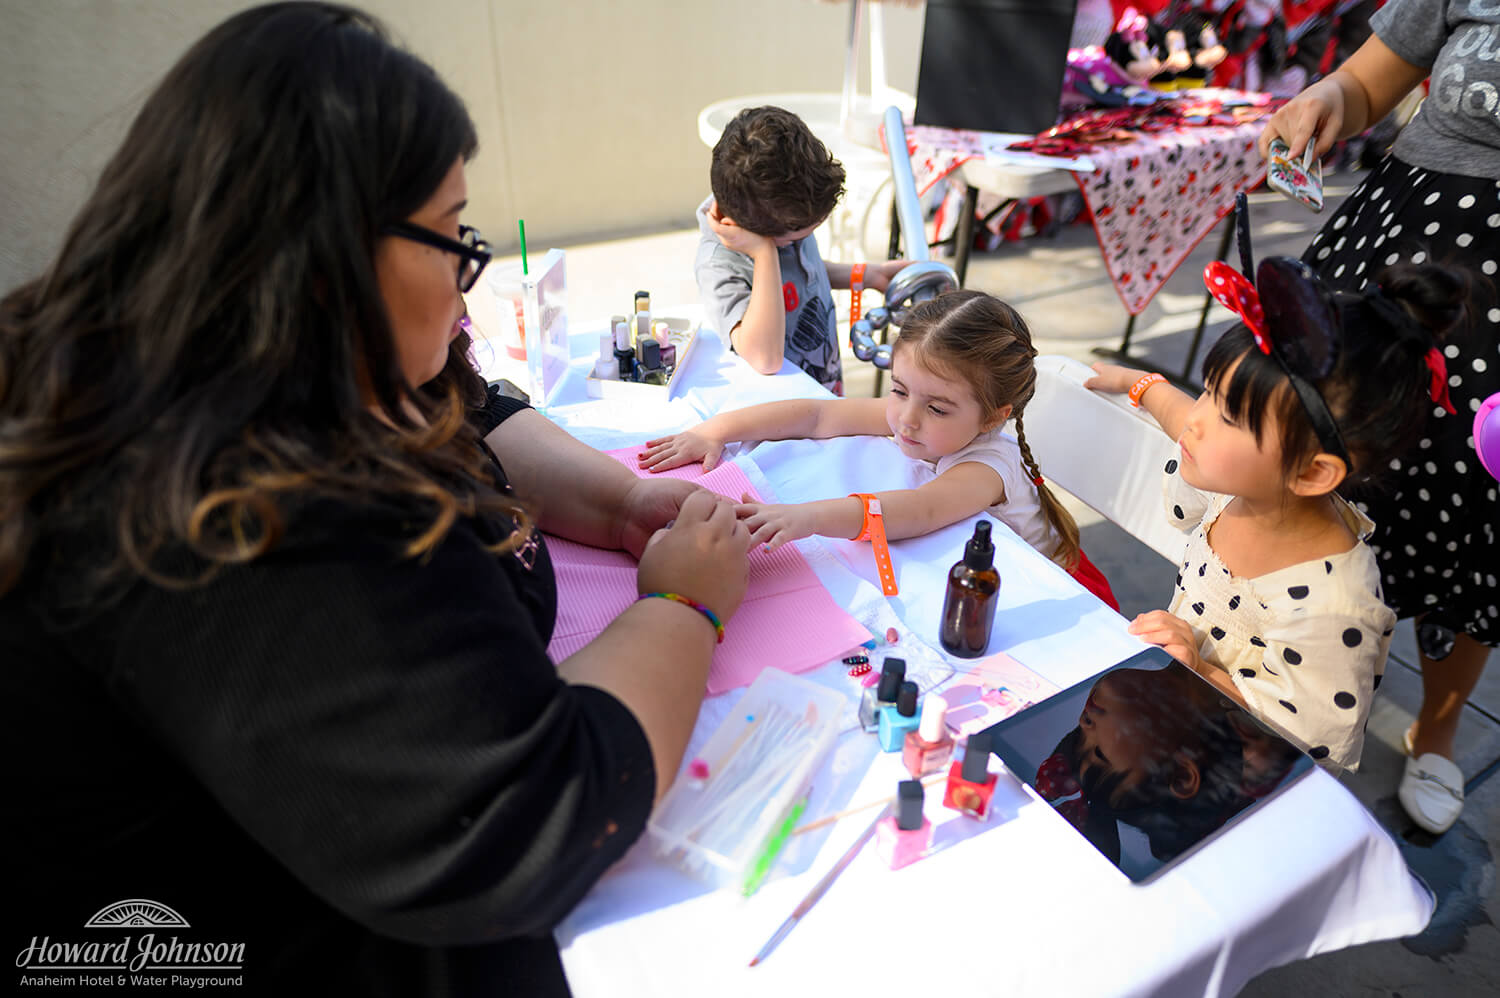 a woman paints the nails of a young girl while her friend watches at the table